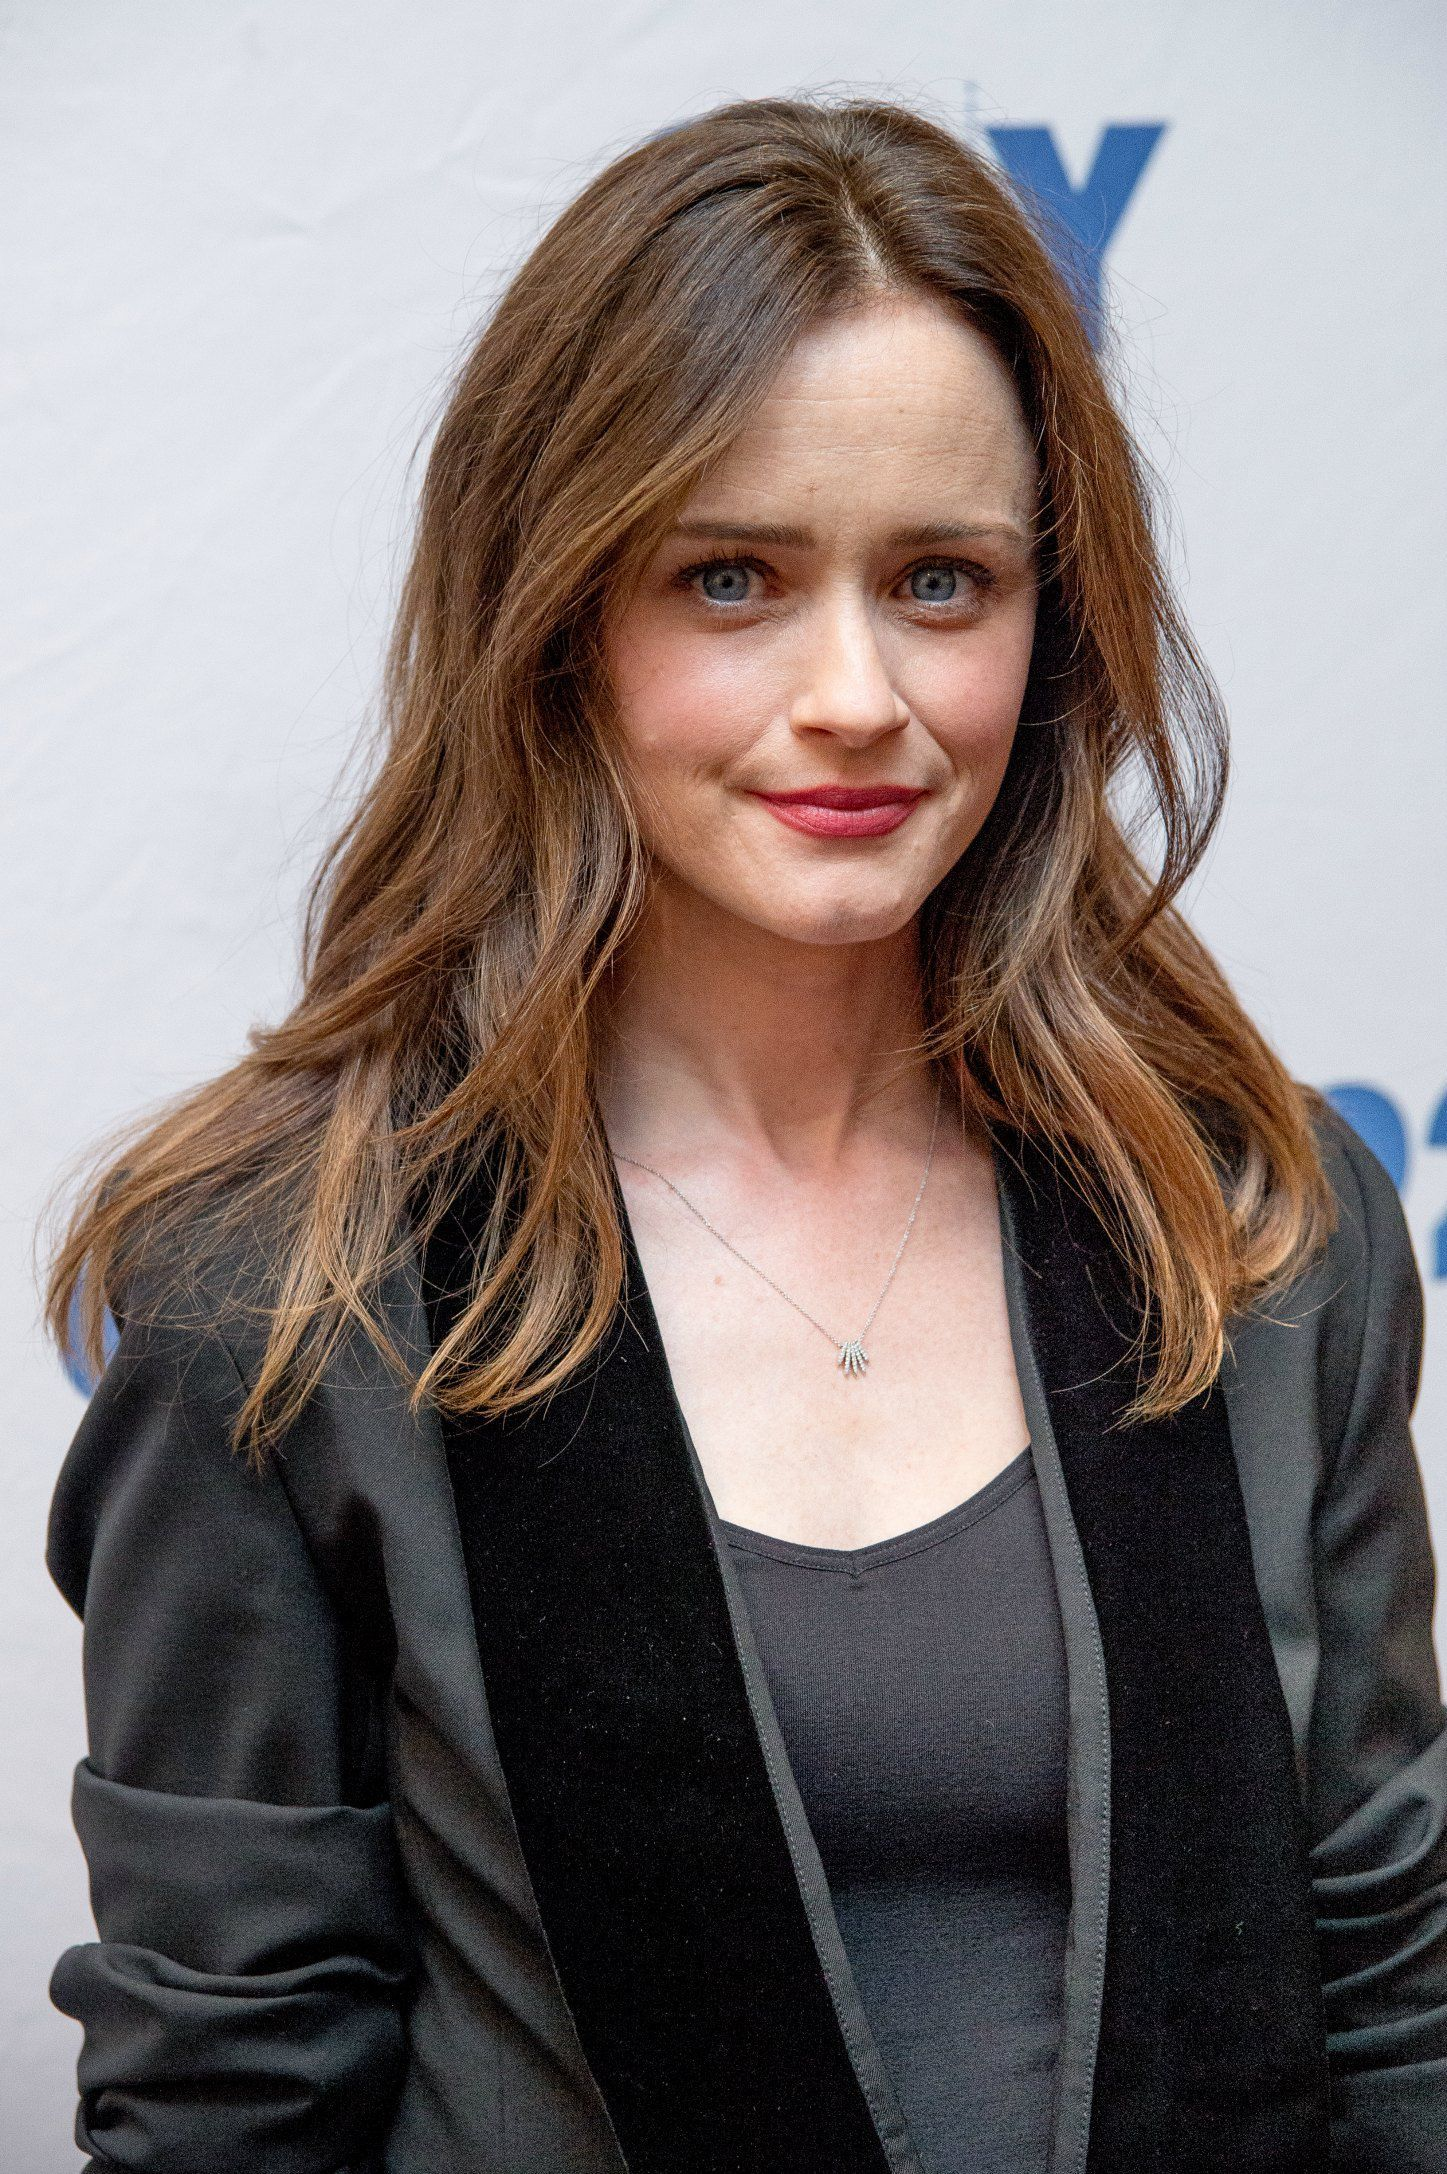 The 30 Best Styles For Women With Thick Hair Alexis Bledel Rory Gilmore Hair Thick Hair Styles